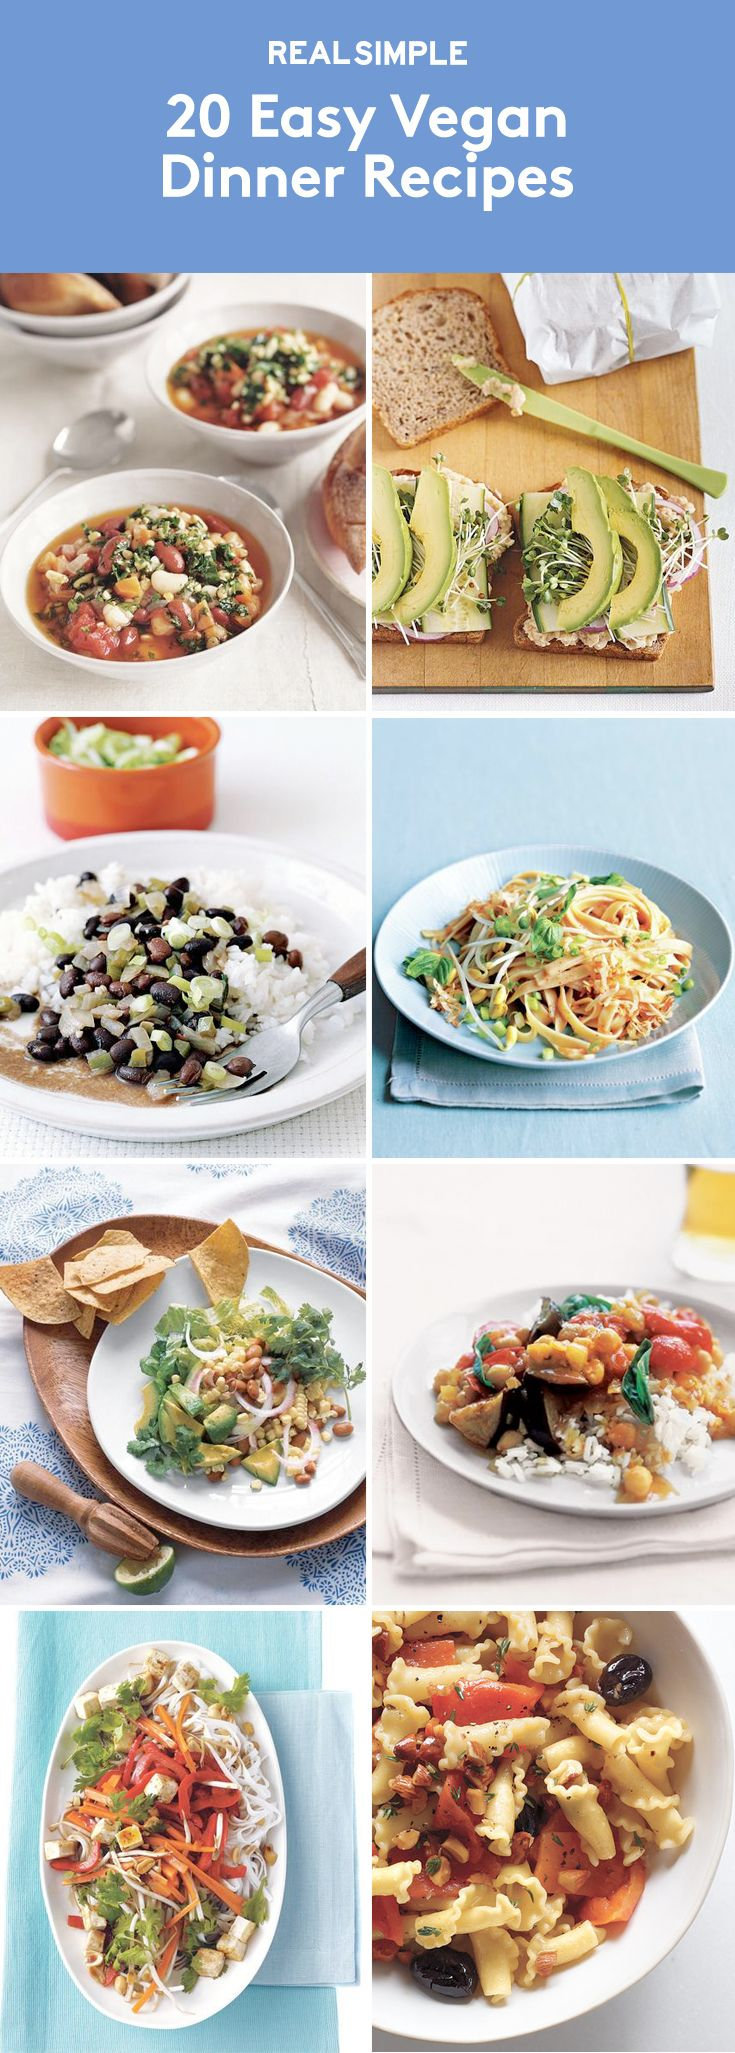 127 best images about vegetarian meals on pinterest easy for Easy entree recipes dinner party